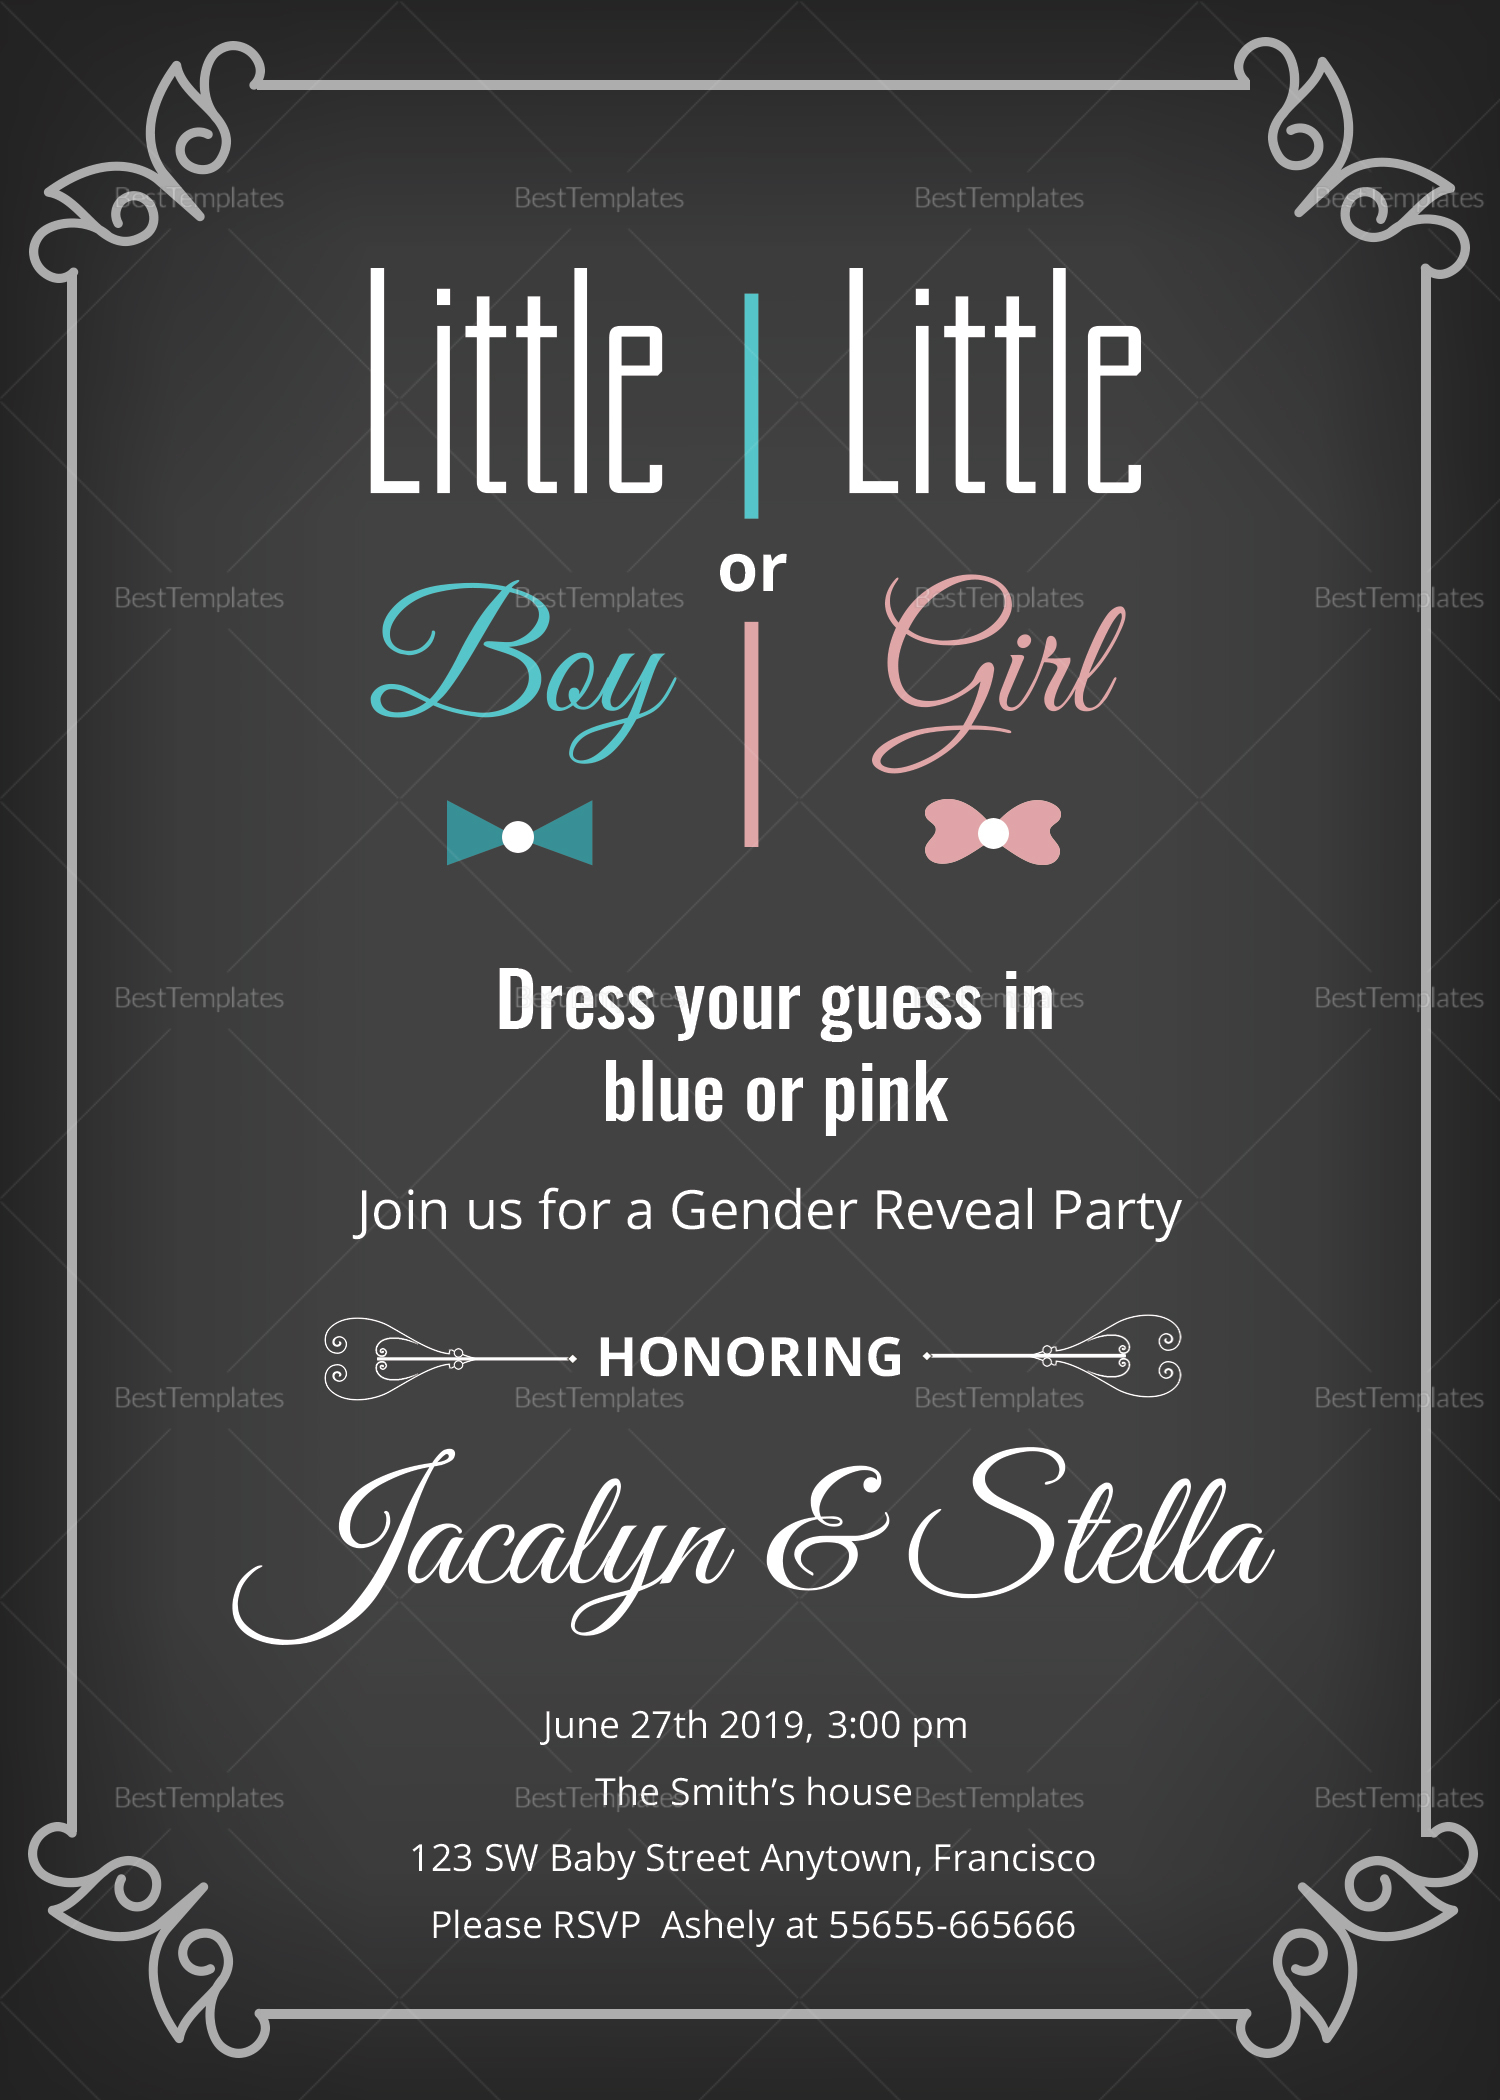 Gender Reveal Party Invitation Card Design